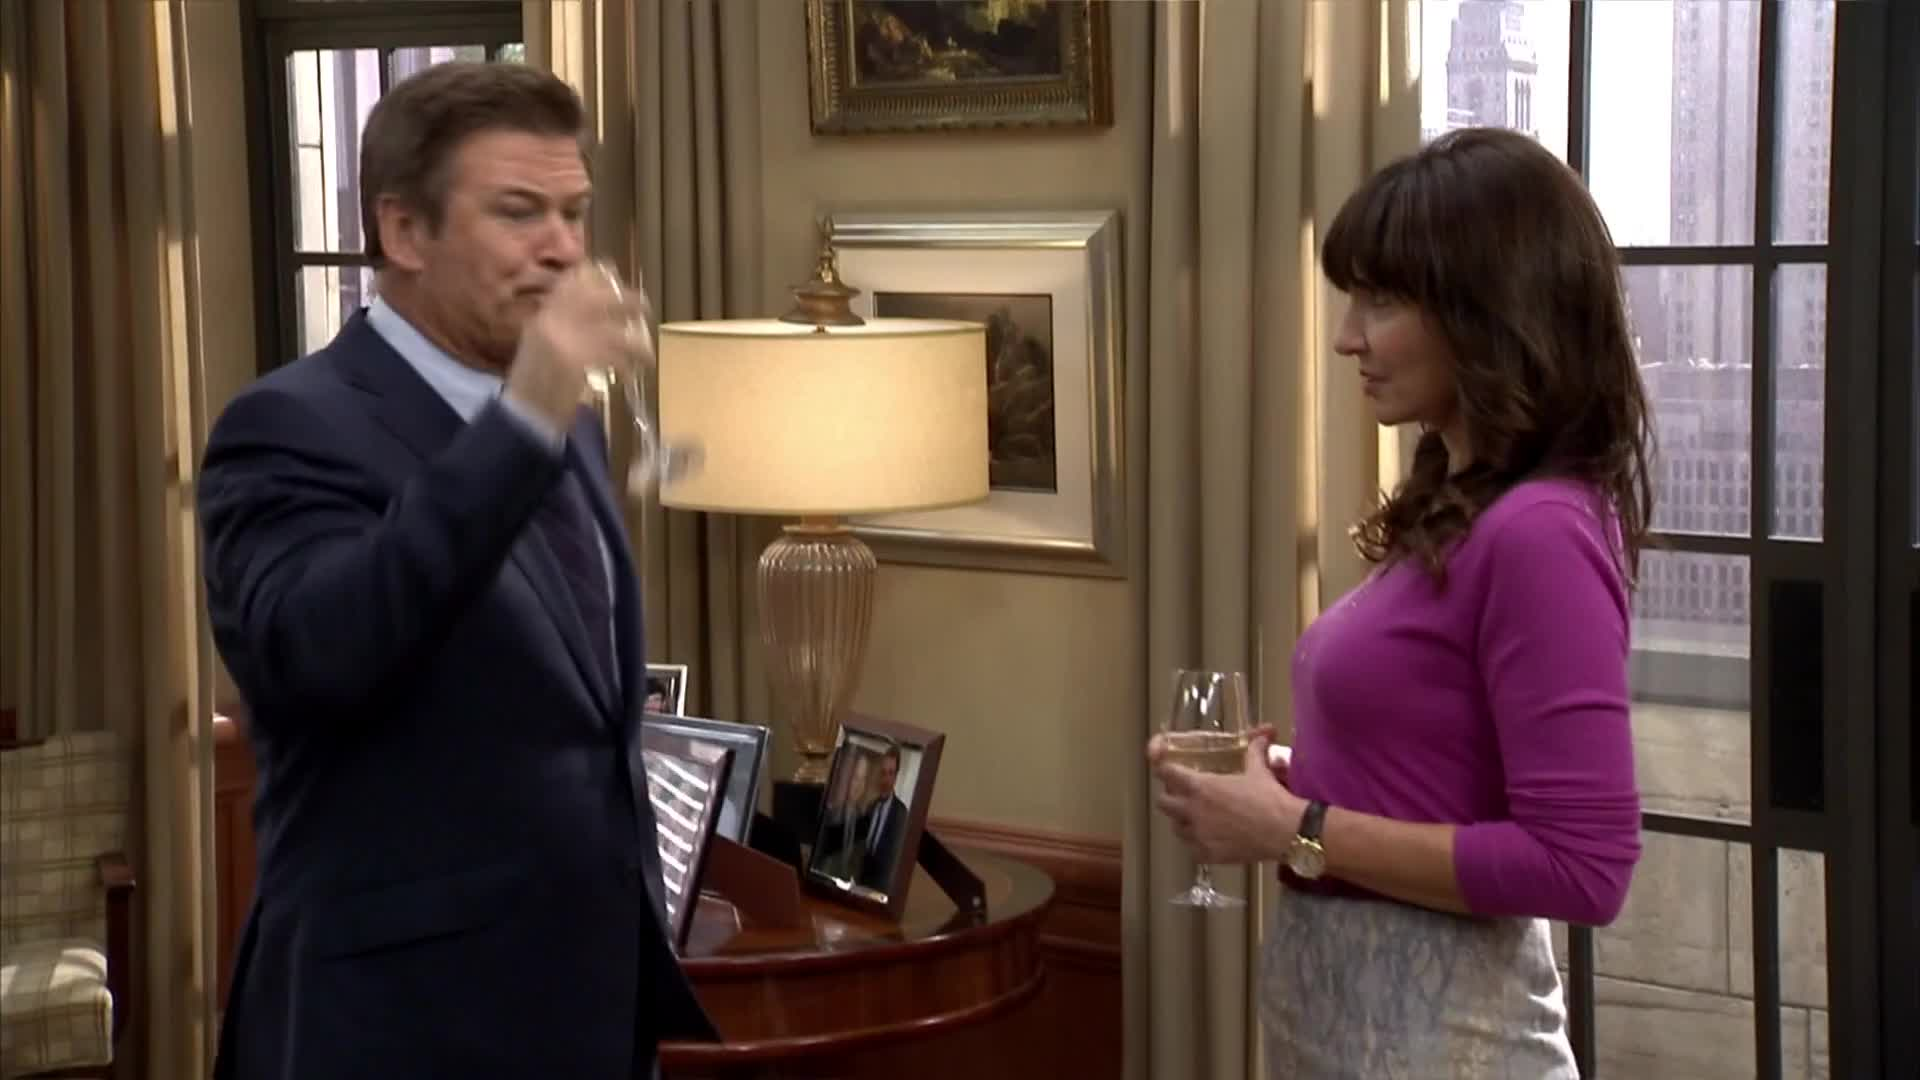 30 rock, alec, baldwin, d'fwine, donaghy, drink, jack, jordan, of, oh no you didn't, oh snap, queen, s06e20, shock, spits, spitting, surprise, wine, Jack spitting out his D'Fwine GIFs